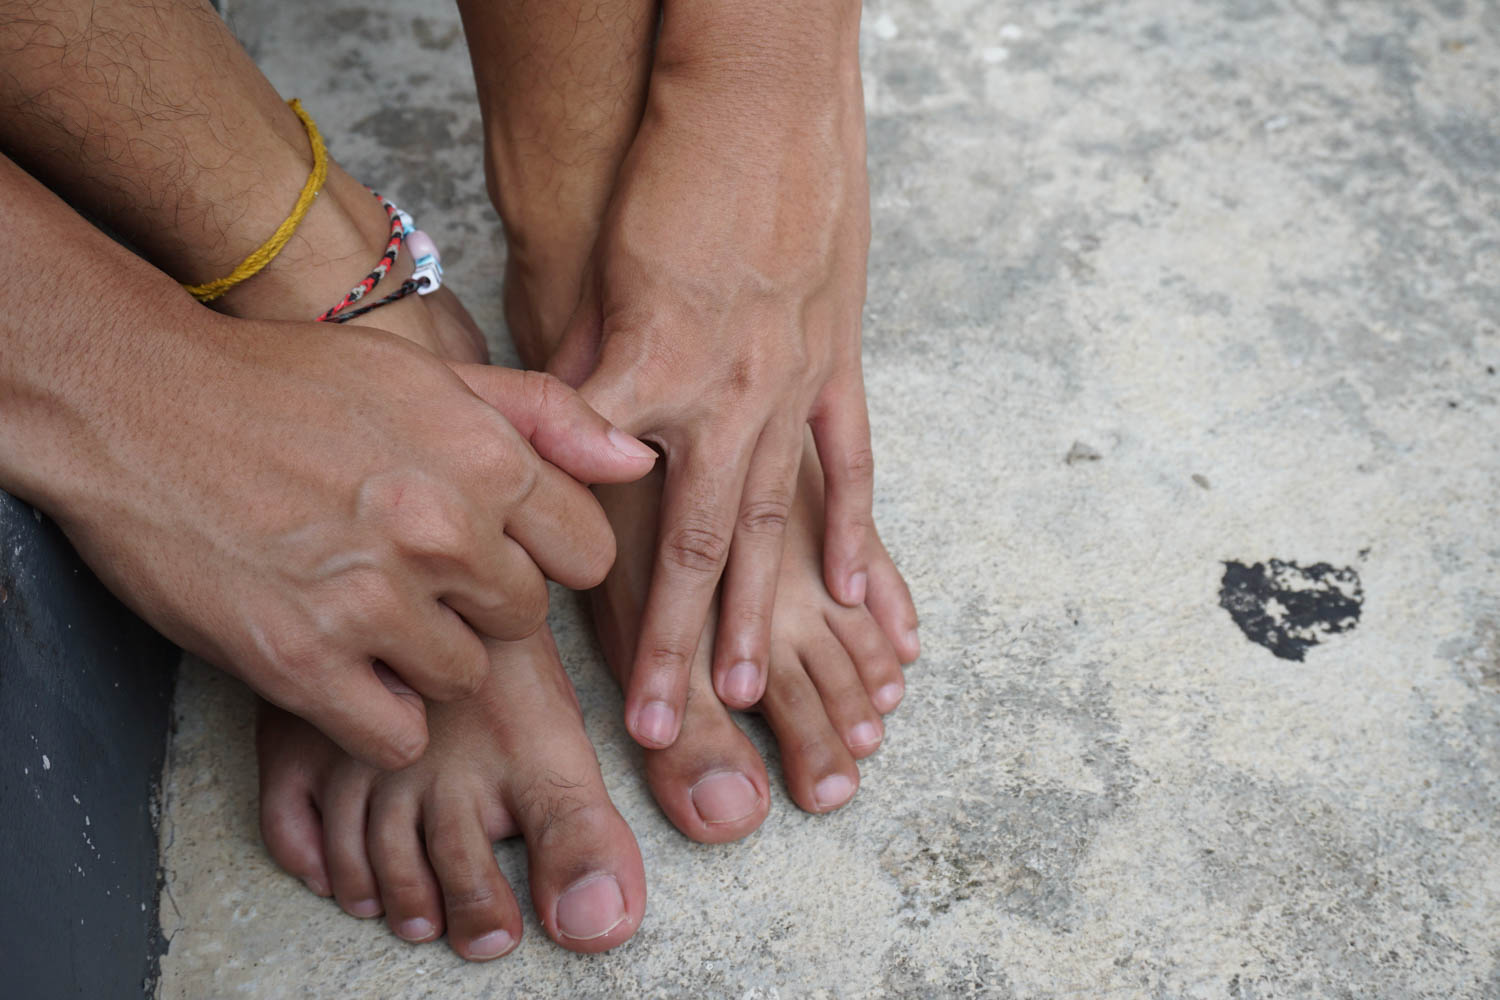 Hand touching feet together